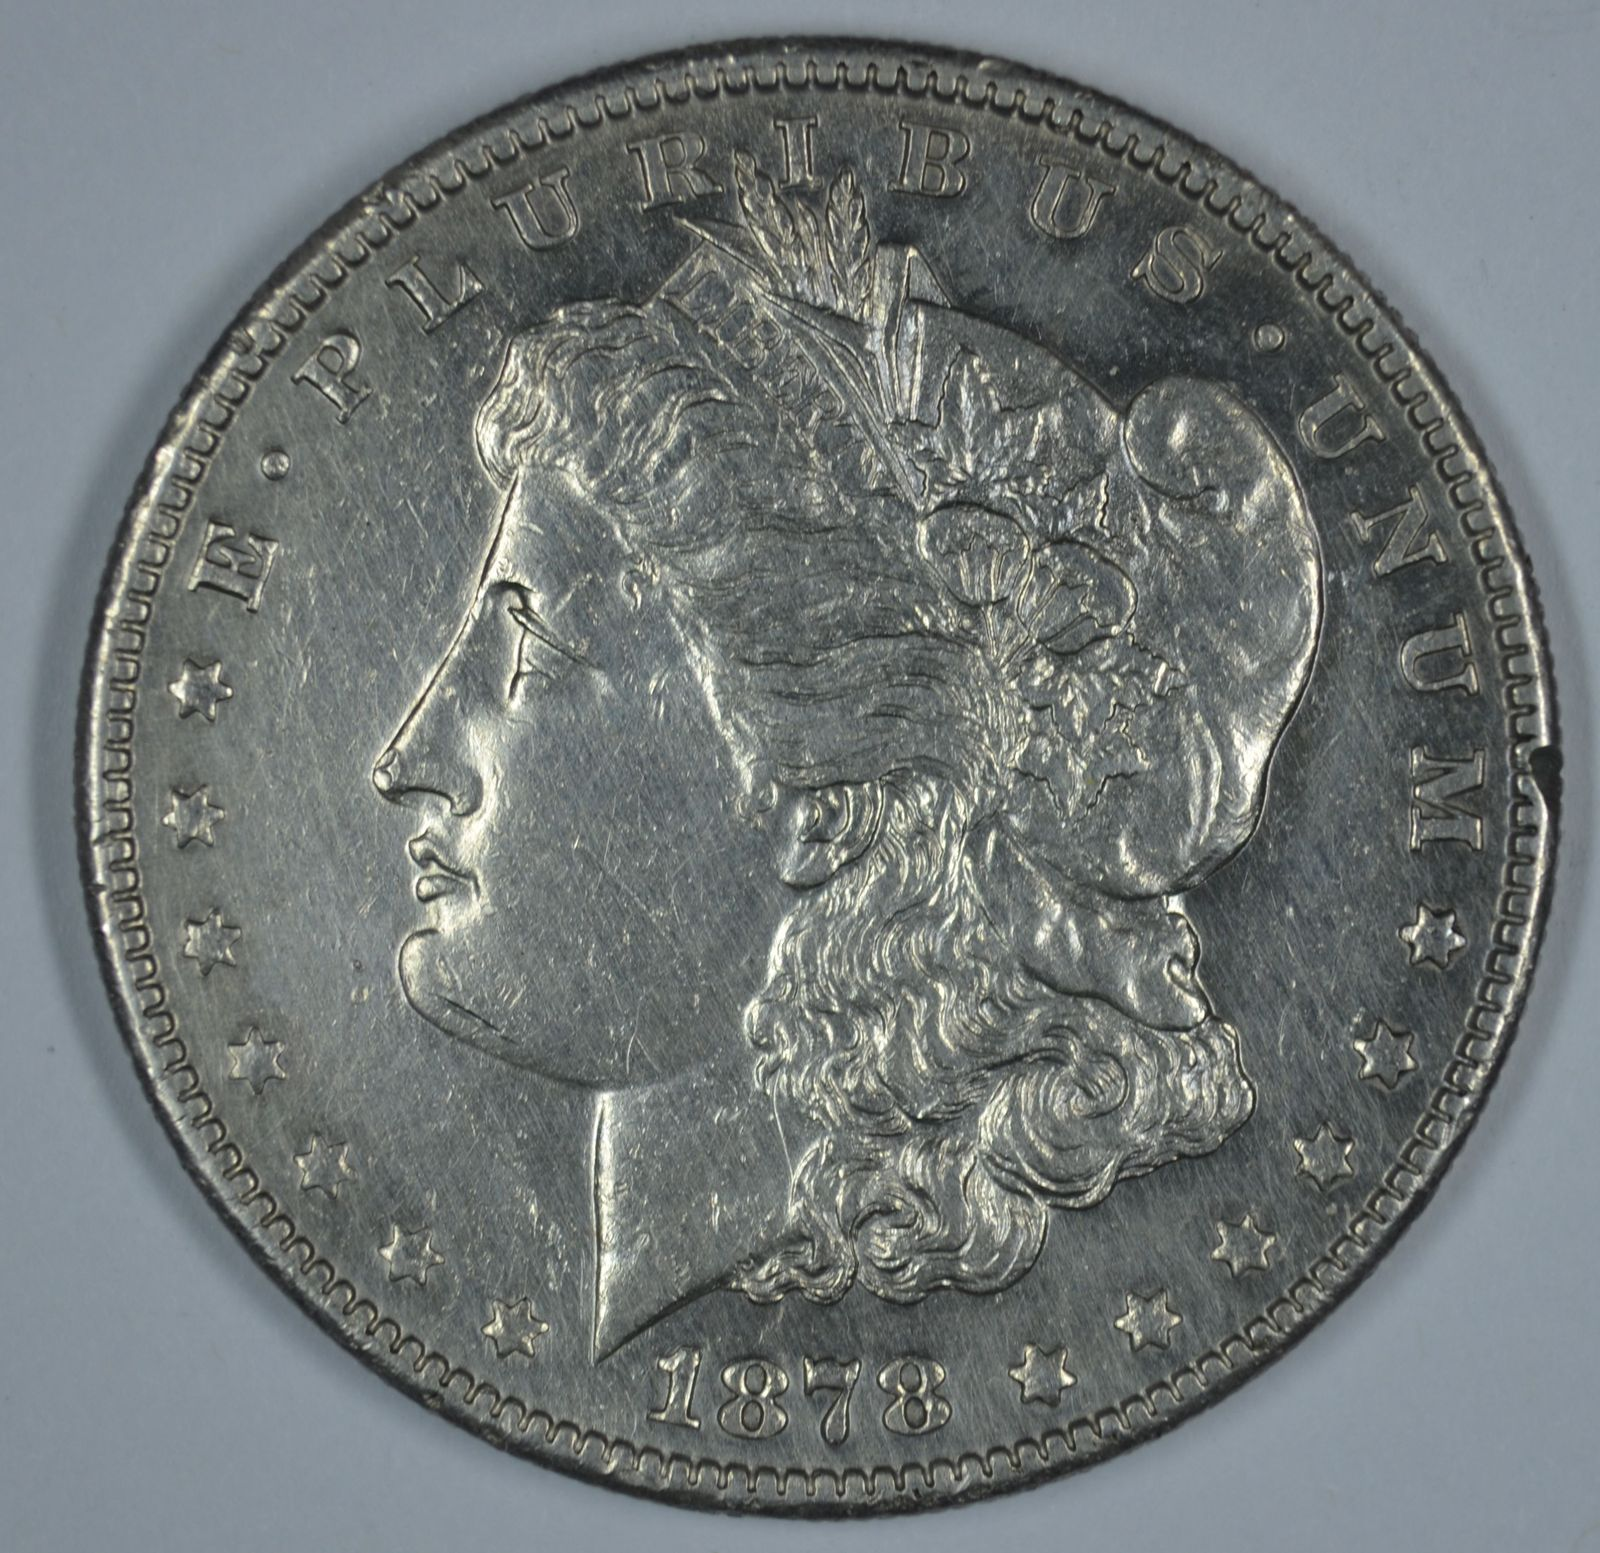 Primary image for 1878 S Morgan circulated silver dollar AU details